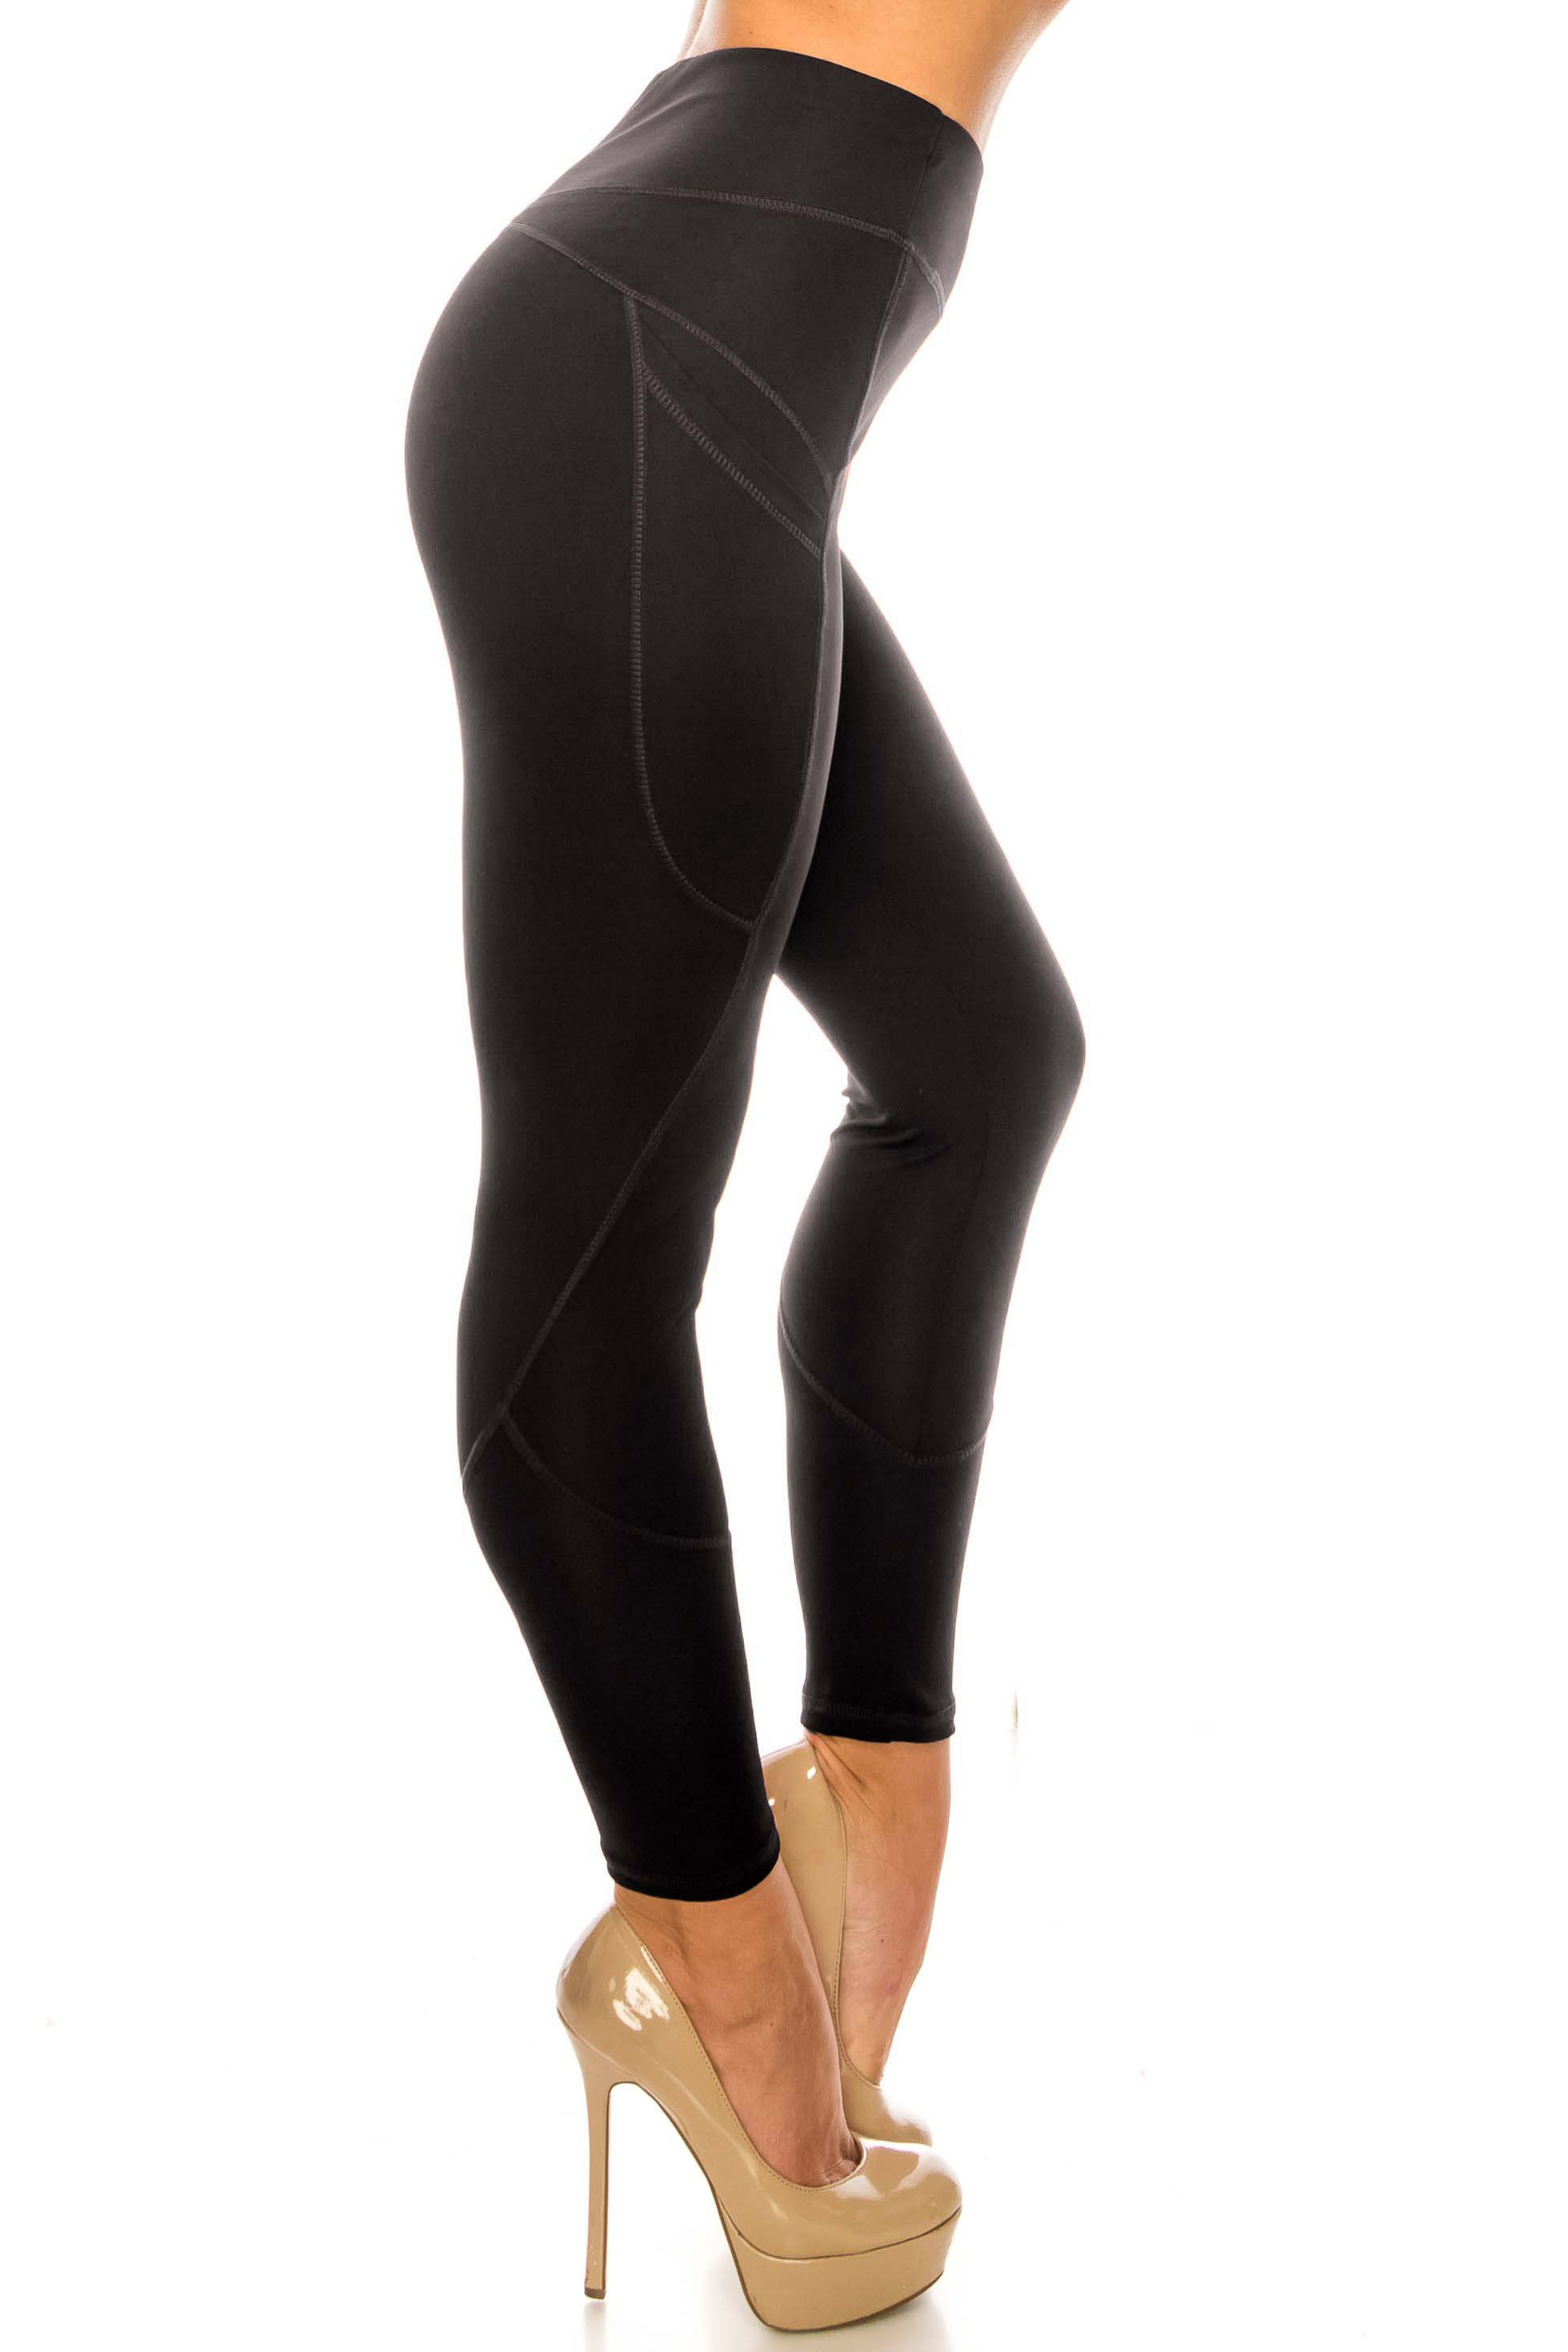 Solid Black Contour Seam High Waisted Sport Leggings with Pockets